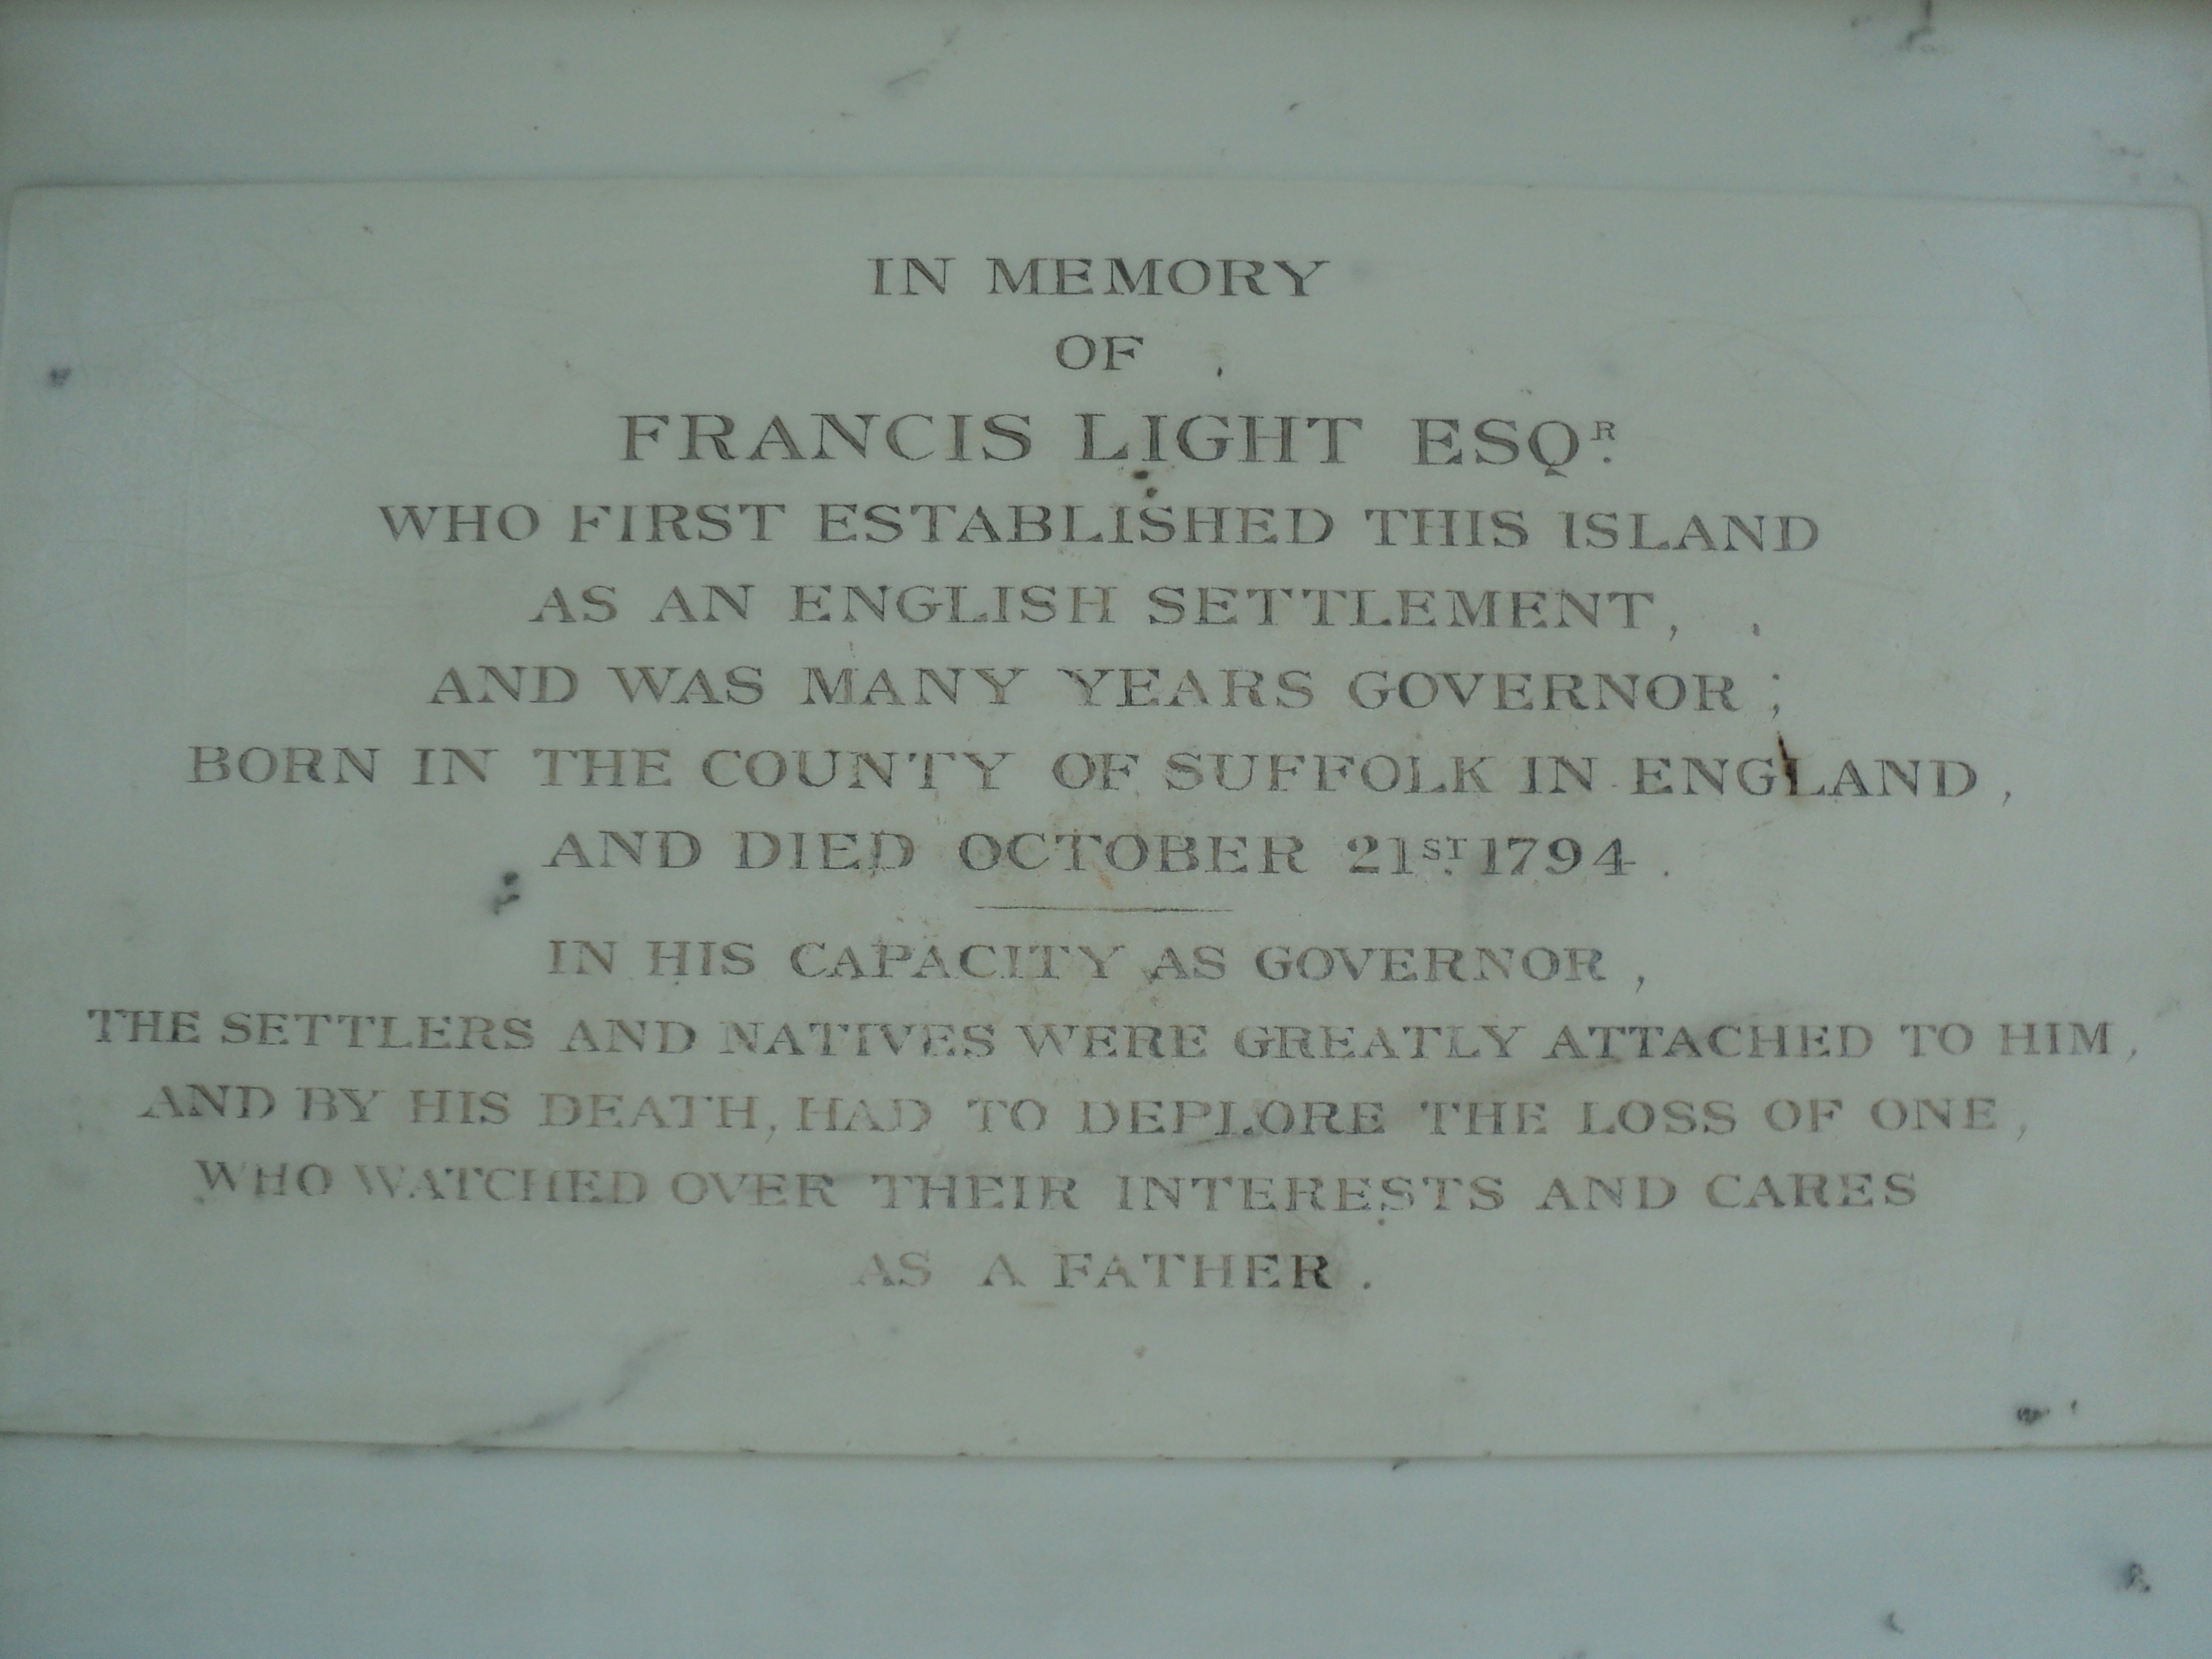 Plaque dedicated to Captain France Light in the memorial pavilion at St. George's Church, George Town, Penang. Photo taken by Mark Joseph Jochim on July 27, 2011.